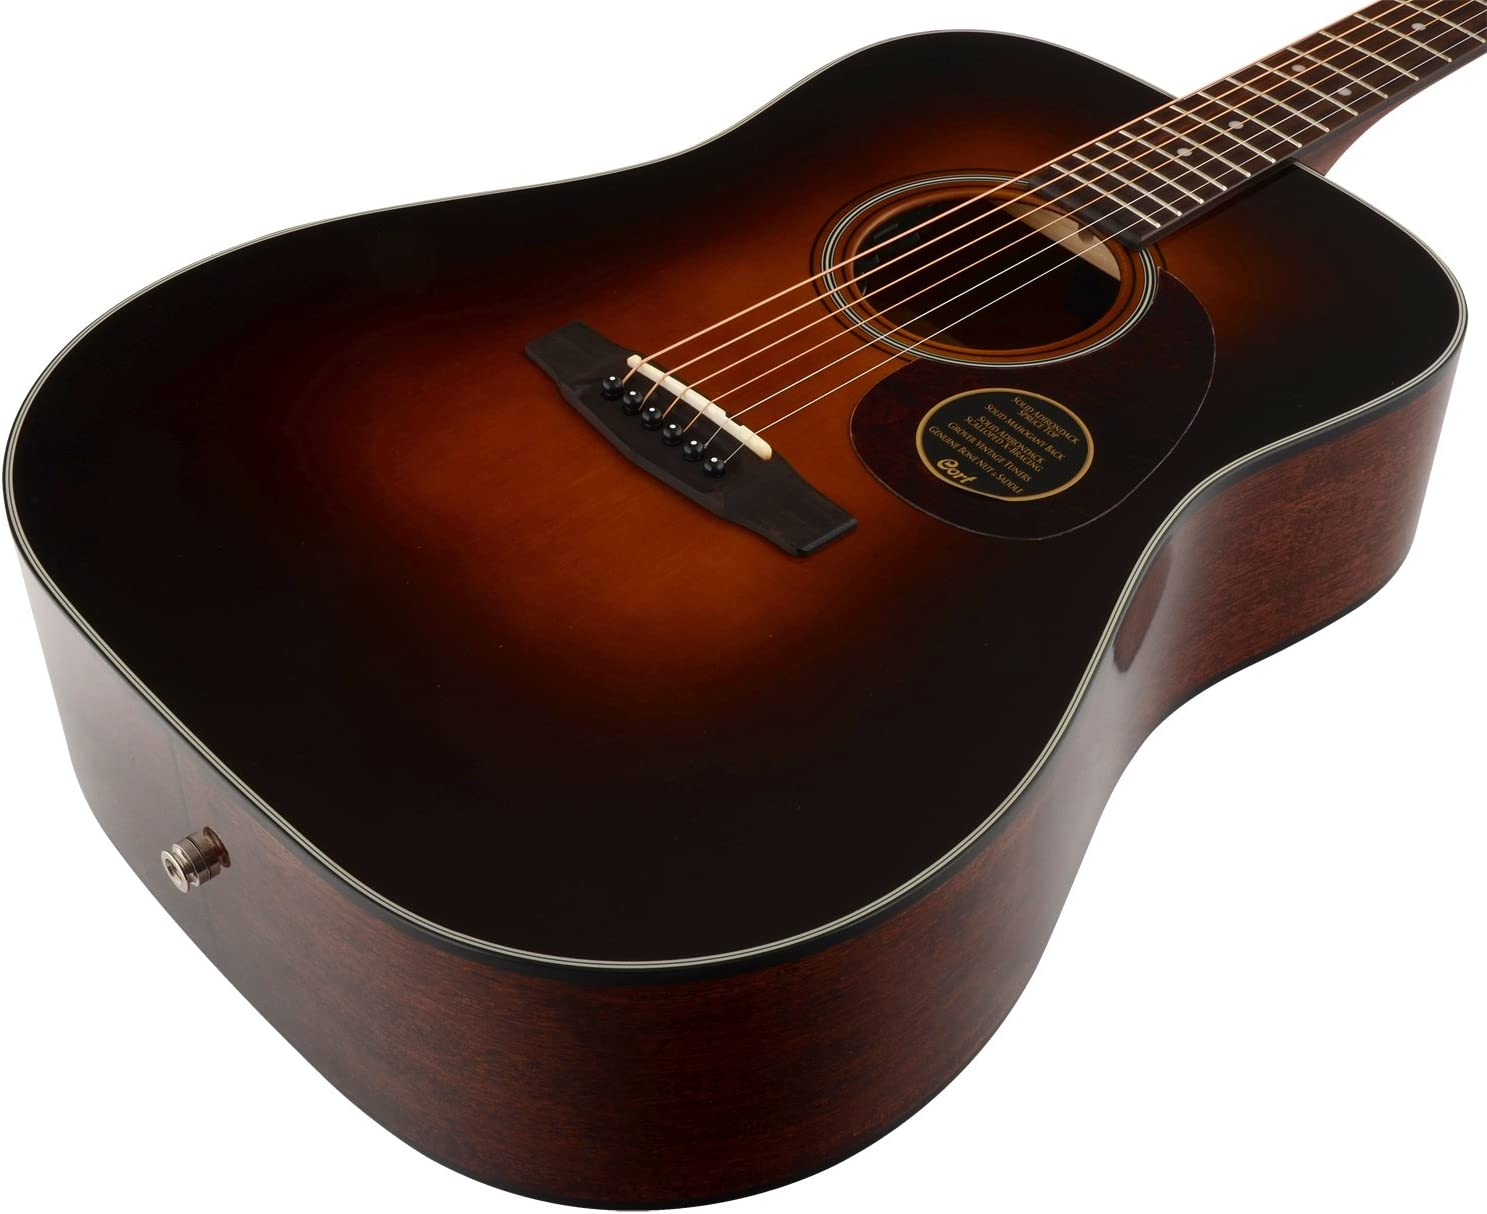 Cort Earth 300 VF eléctrico de guitarra acústica: Amazon.es ...